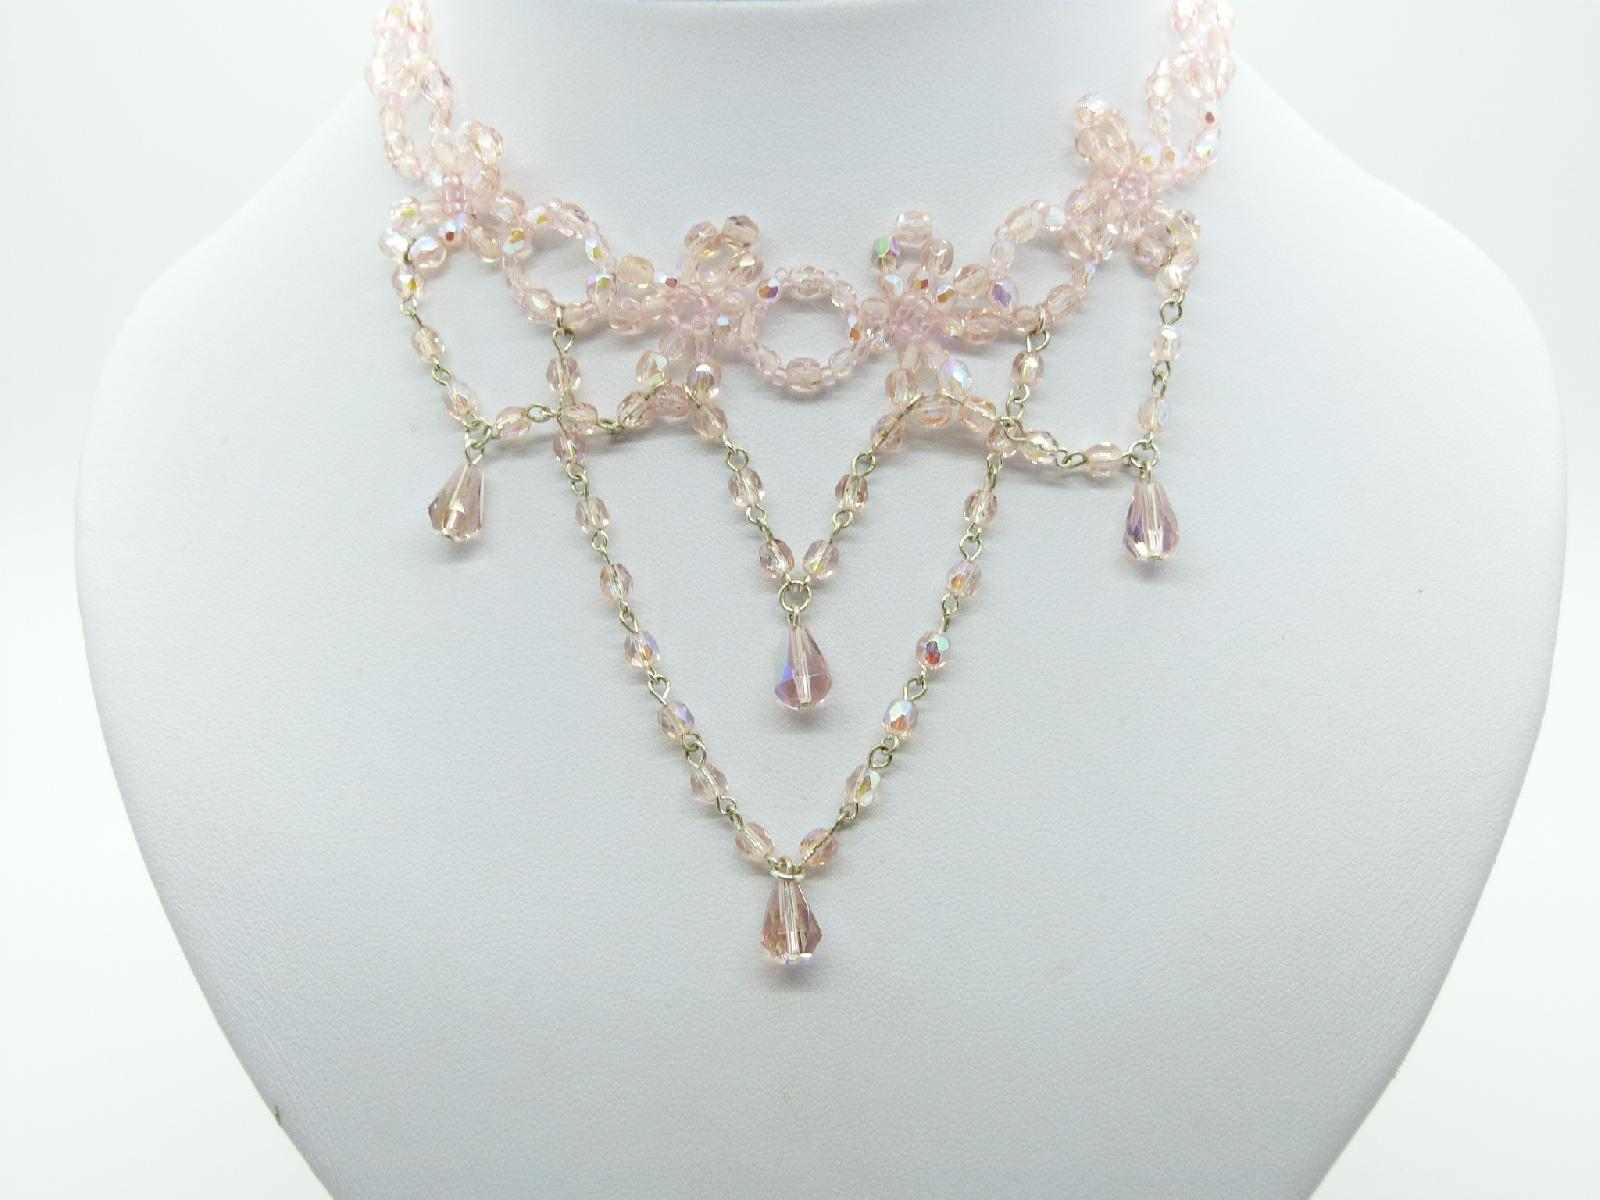 Vintage Style Pretty Pink AB Glass Bead Festoon Drop Choker Necklace